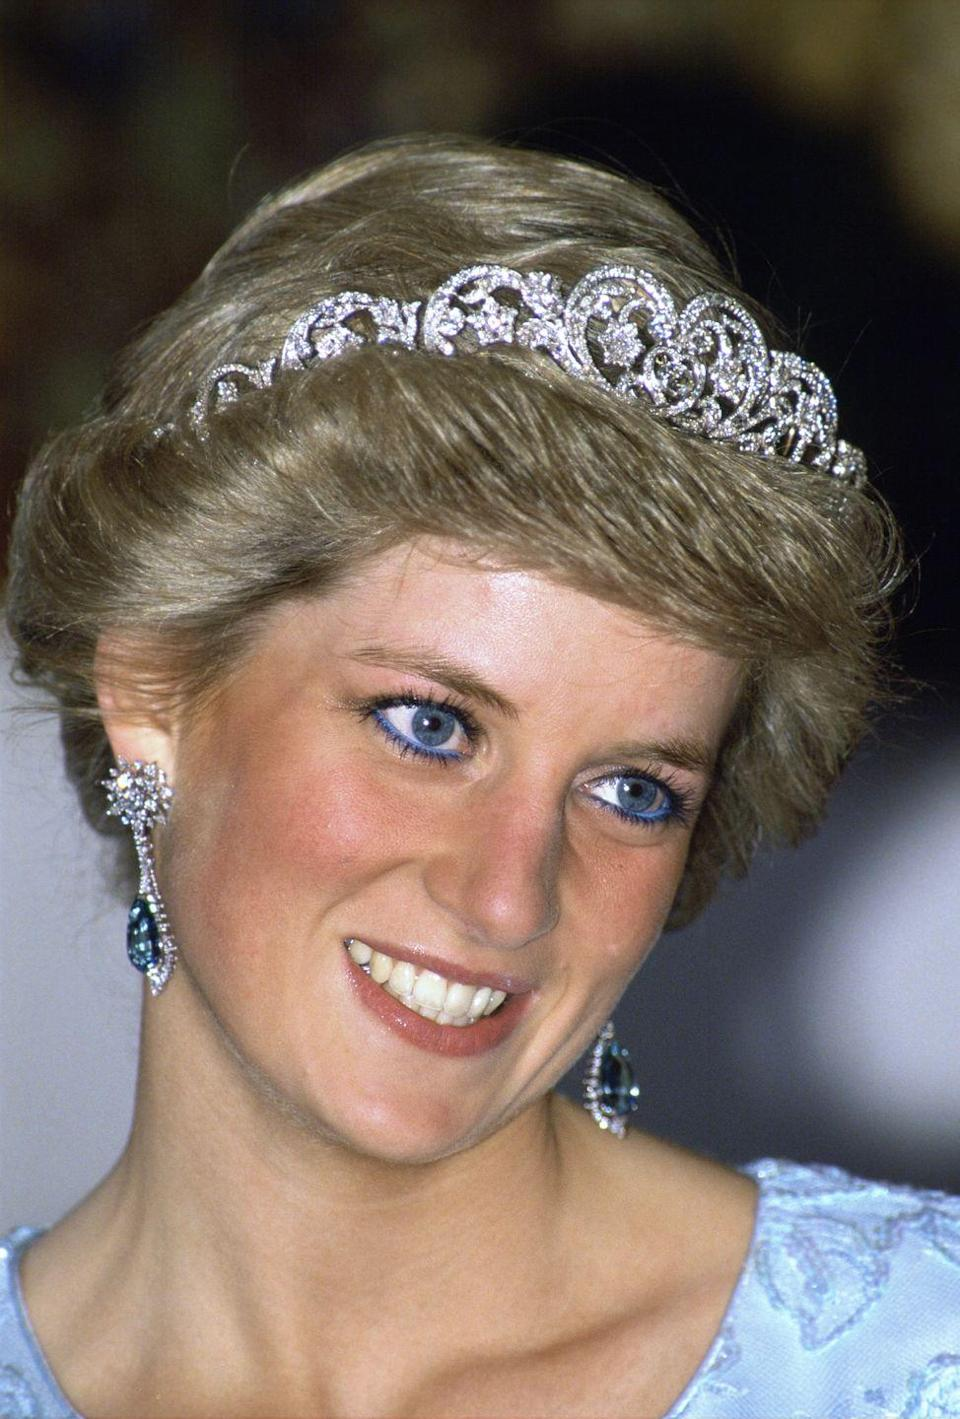 <p>Diana, Princess of Wales, attended a banquet during an official visit to Munich, Germany. The Princess paired the Spencer tiara with diamond and aquamarine earrings and, for a fun touch, bright blue eyeliner. </p>